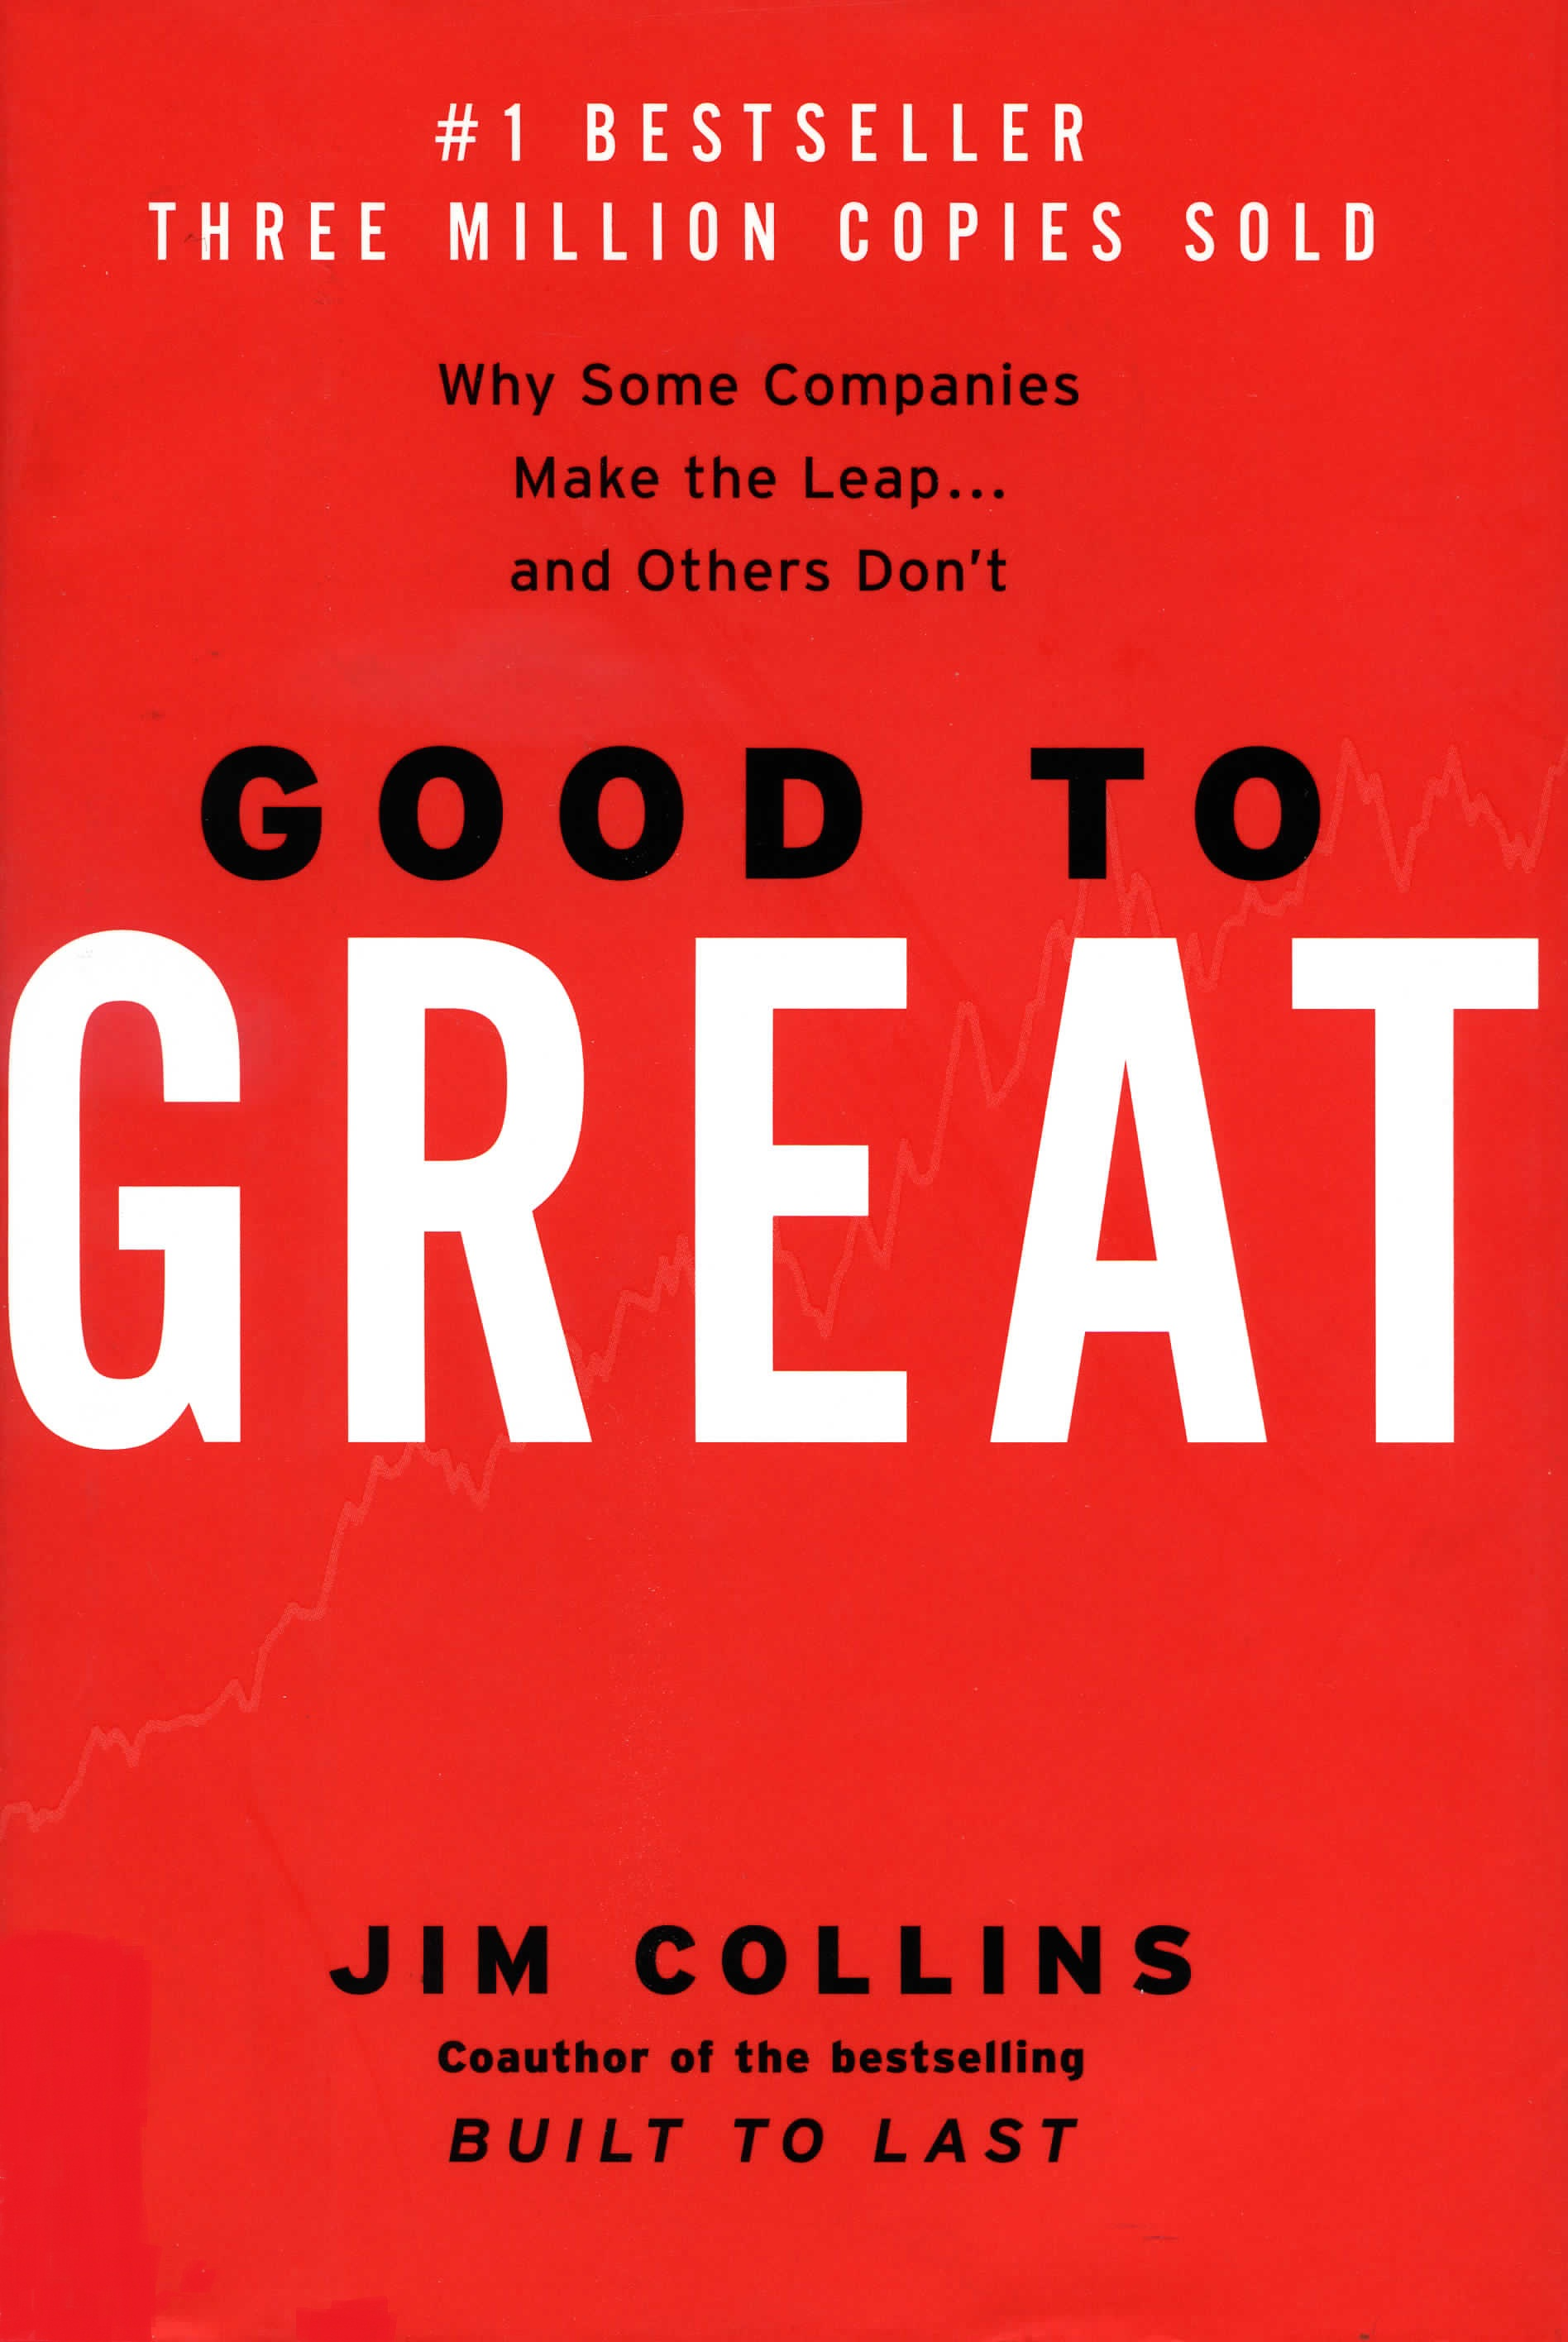 book_JimCollins-GoodToGreat.jpg